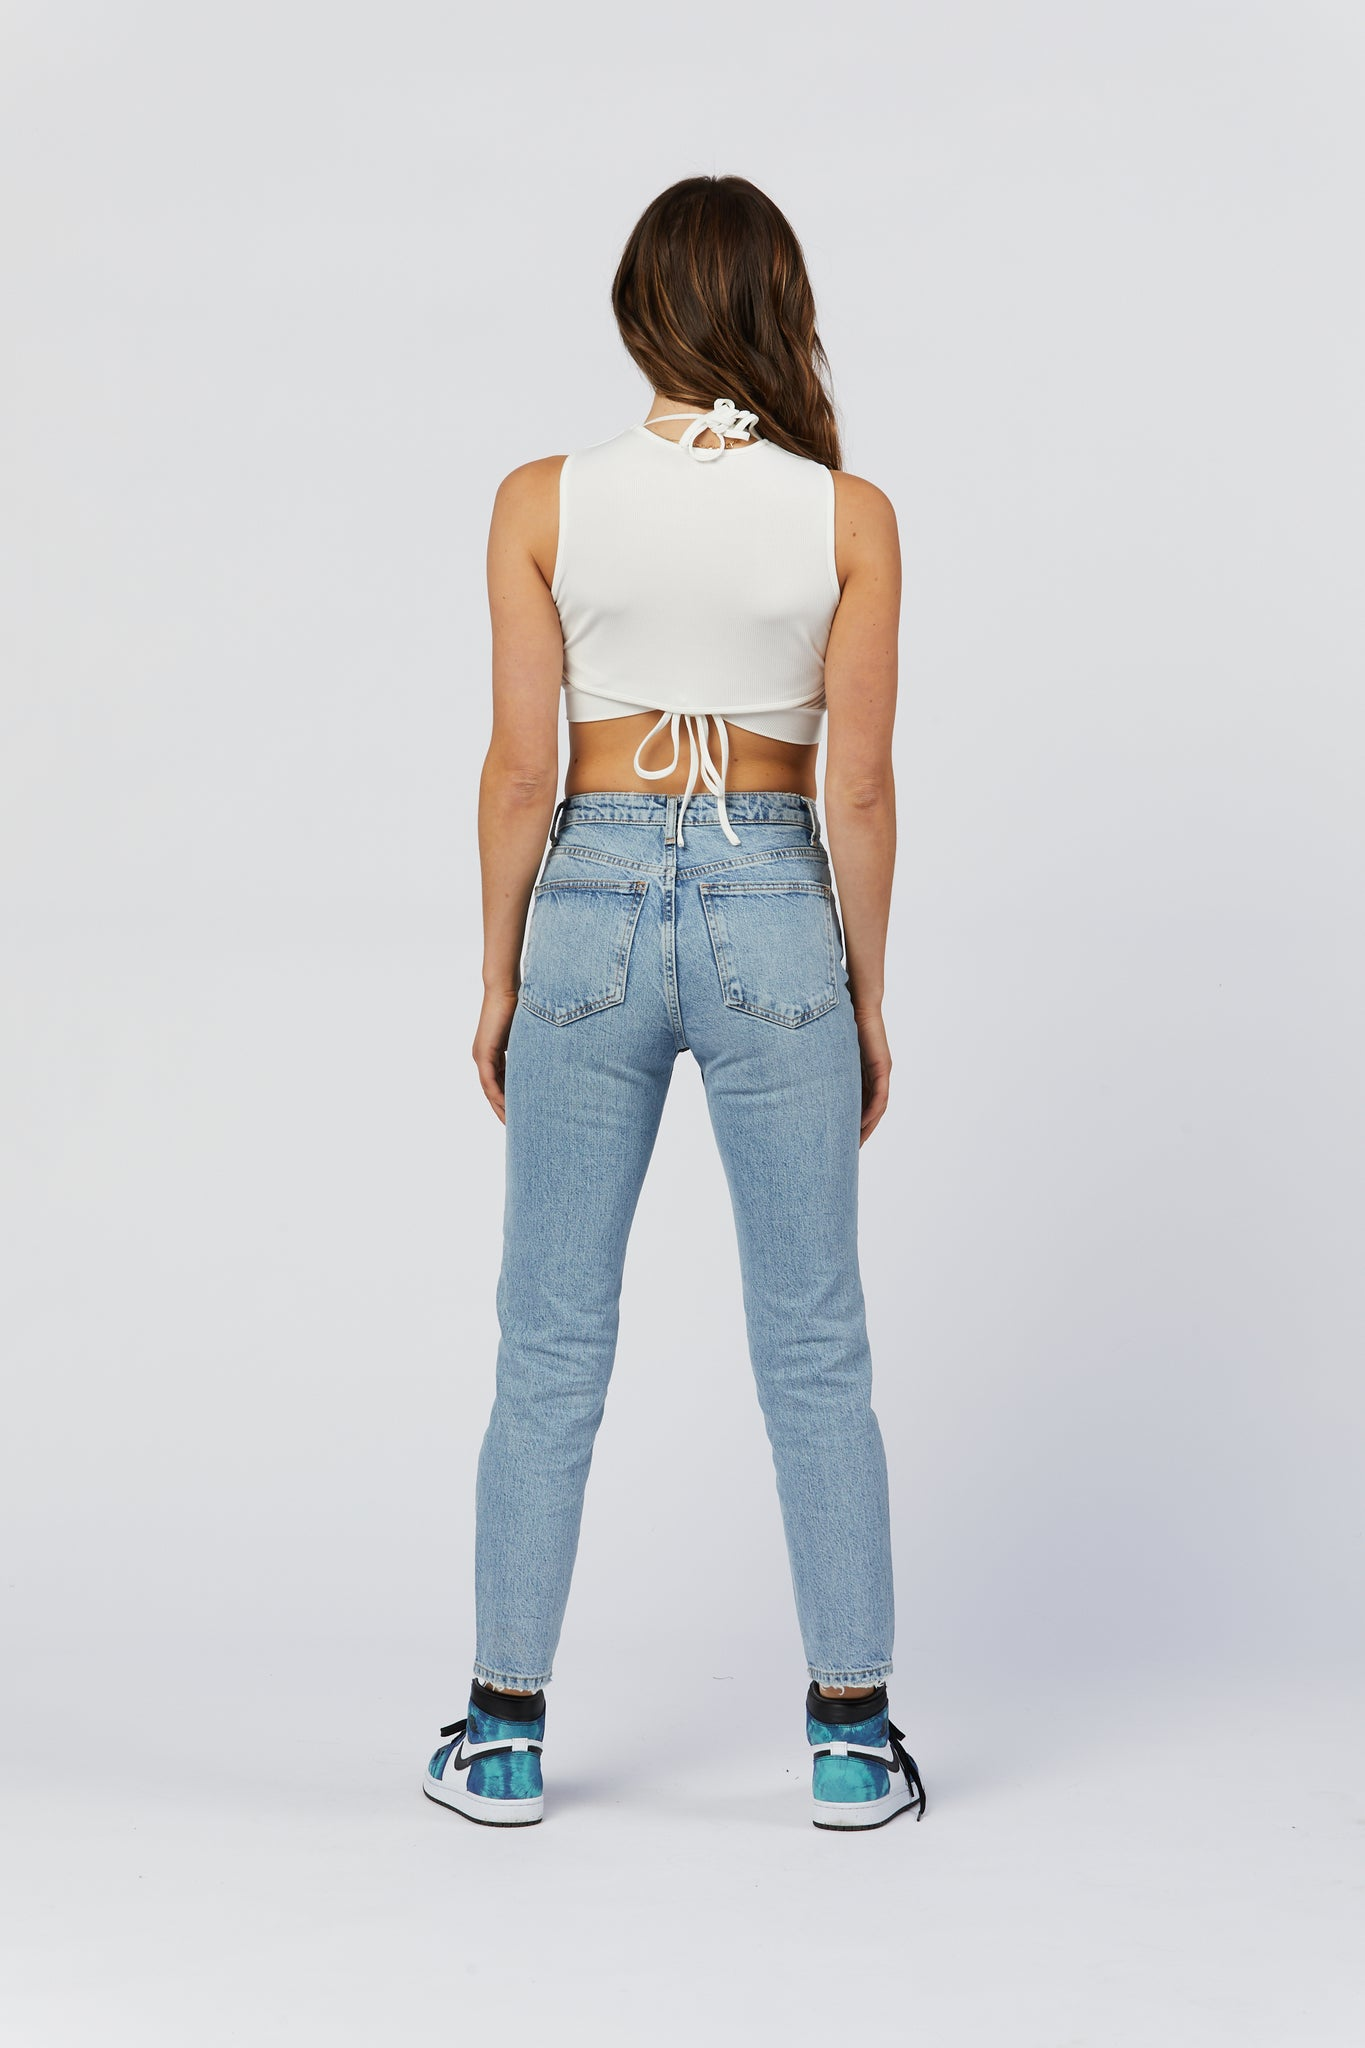 Cutout Top - White